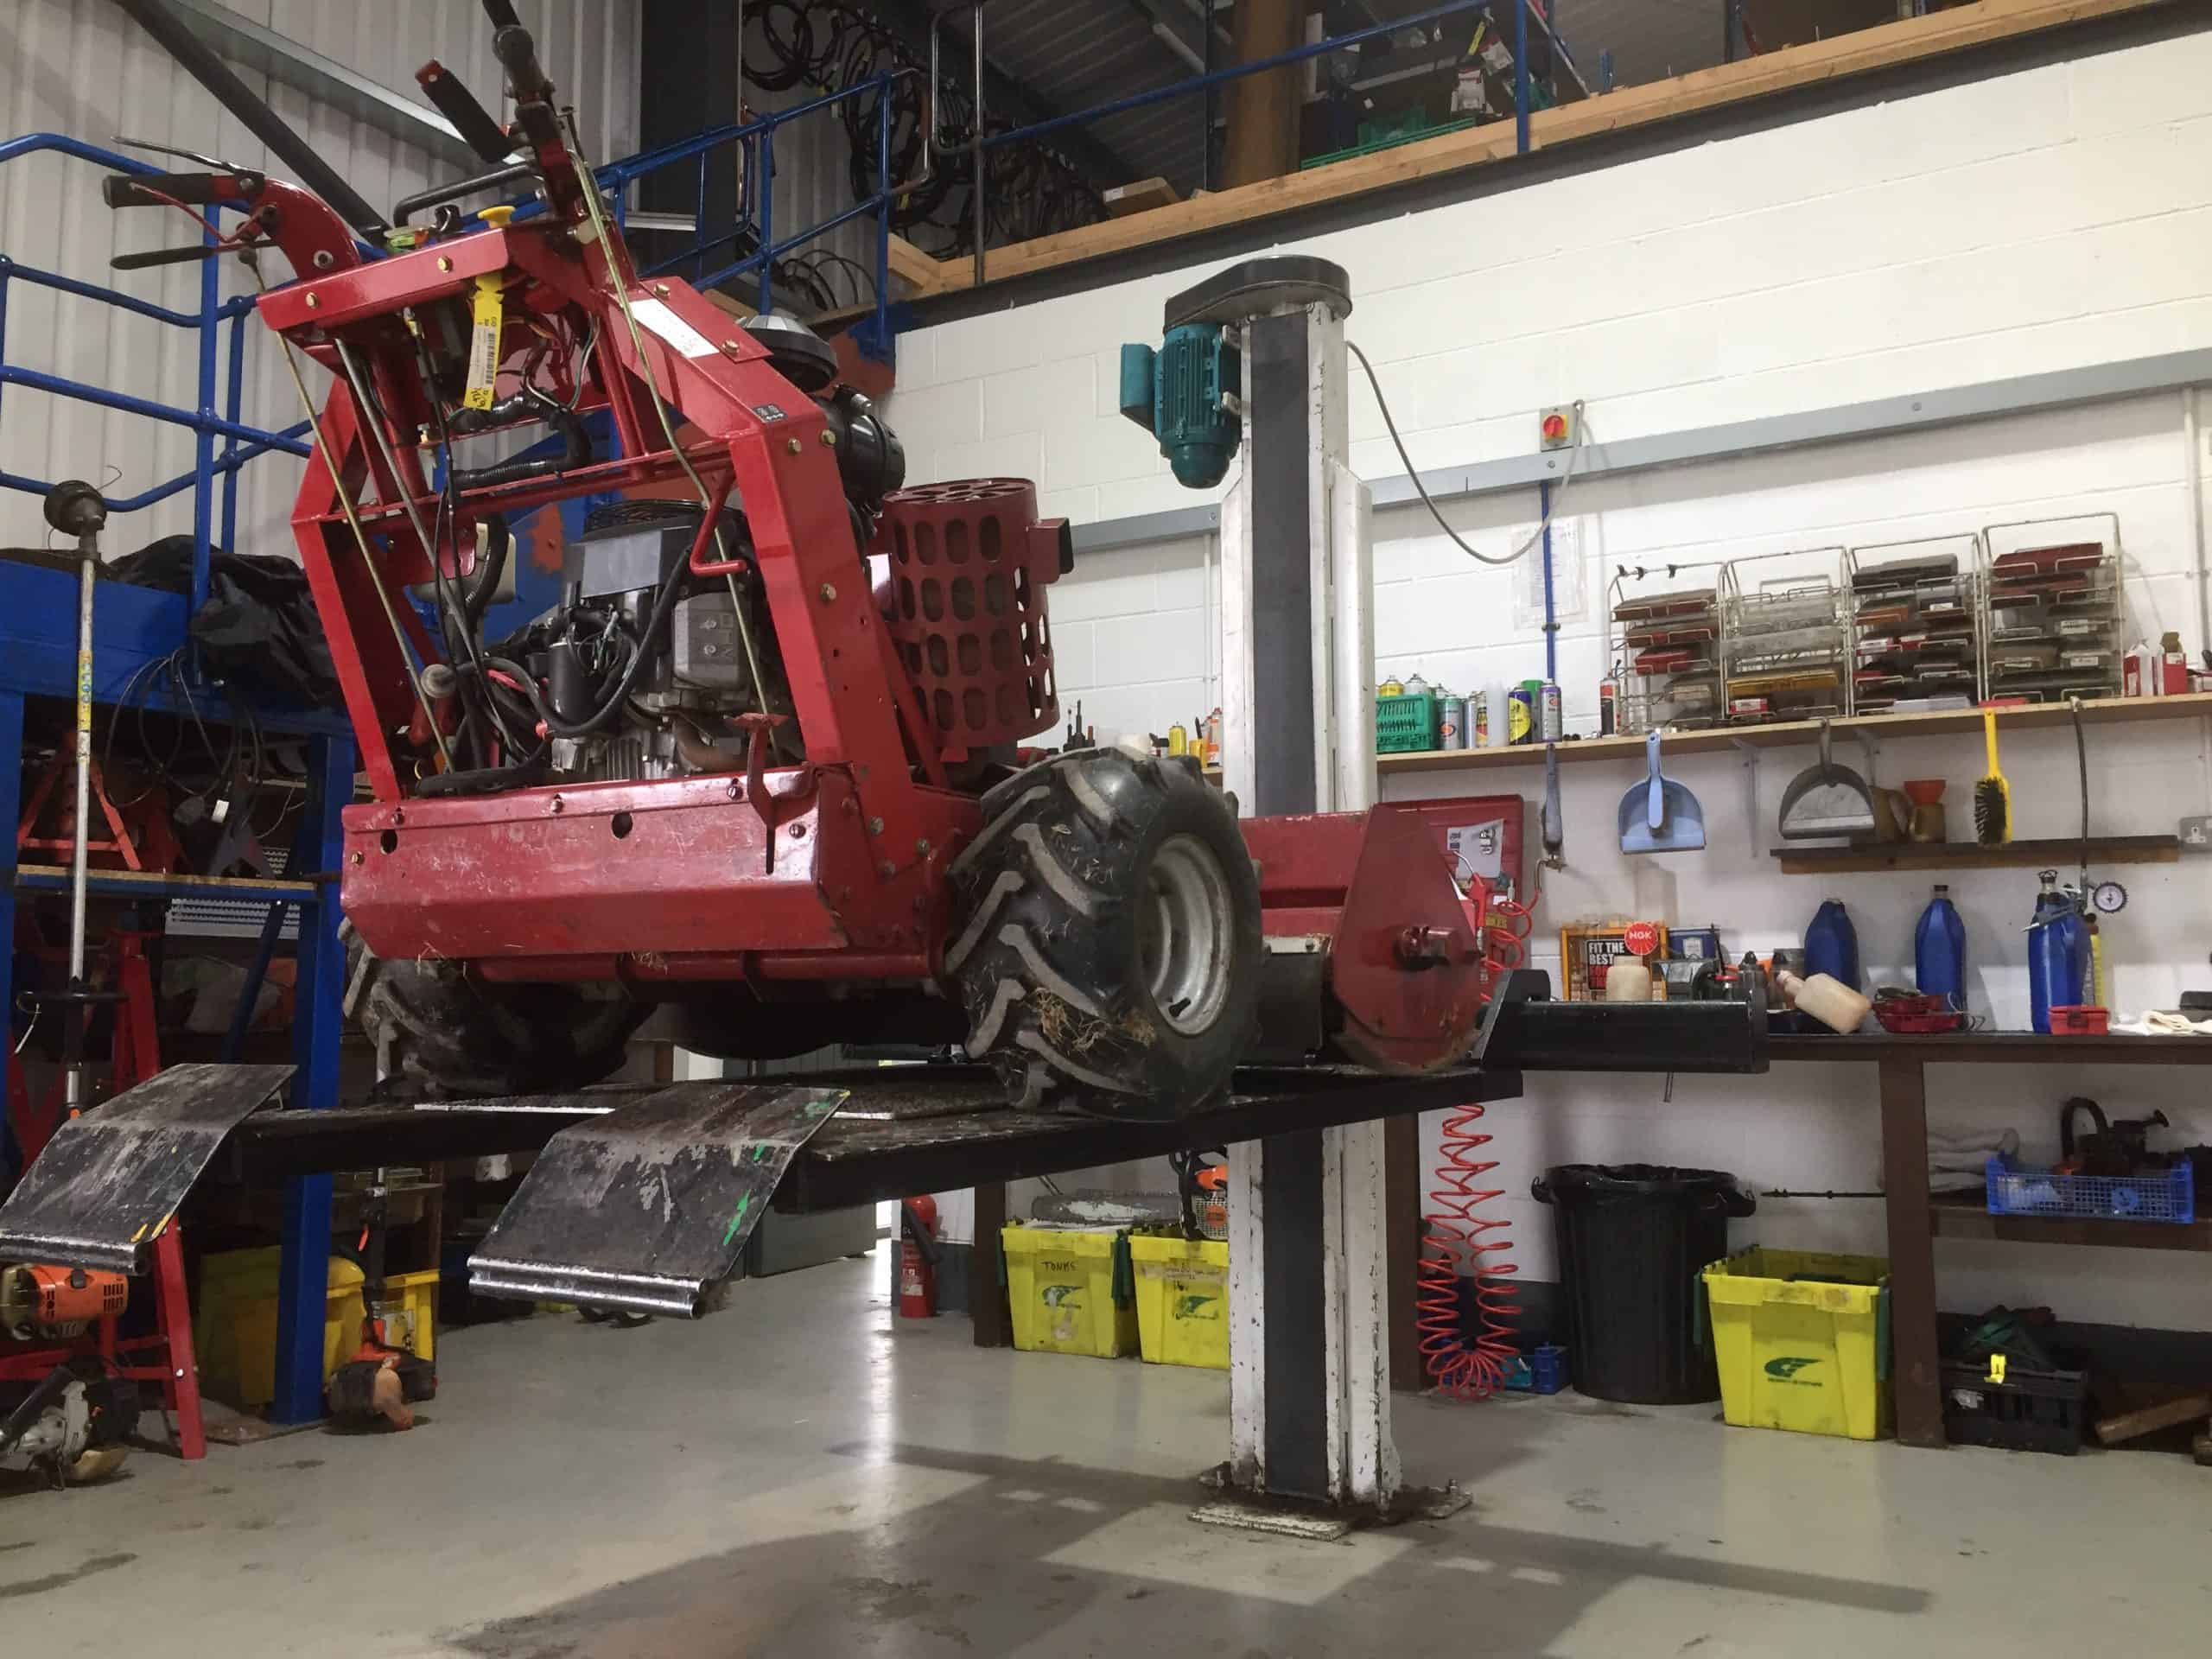 horticultural machinery up on ramp for repair